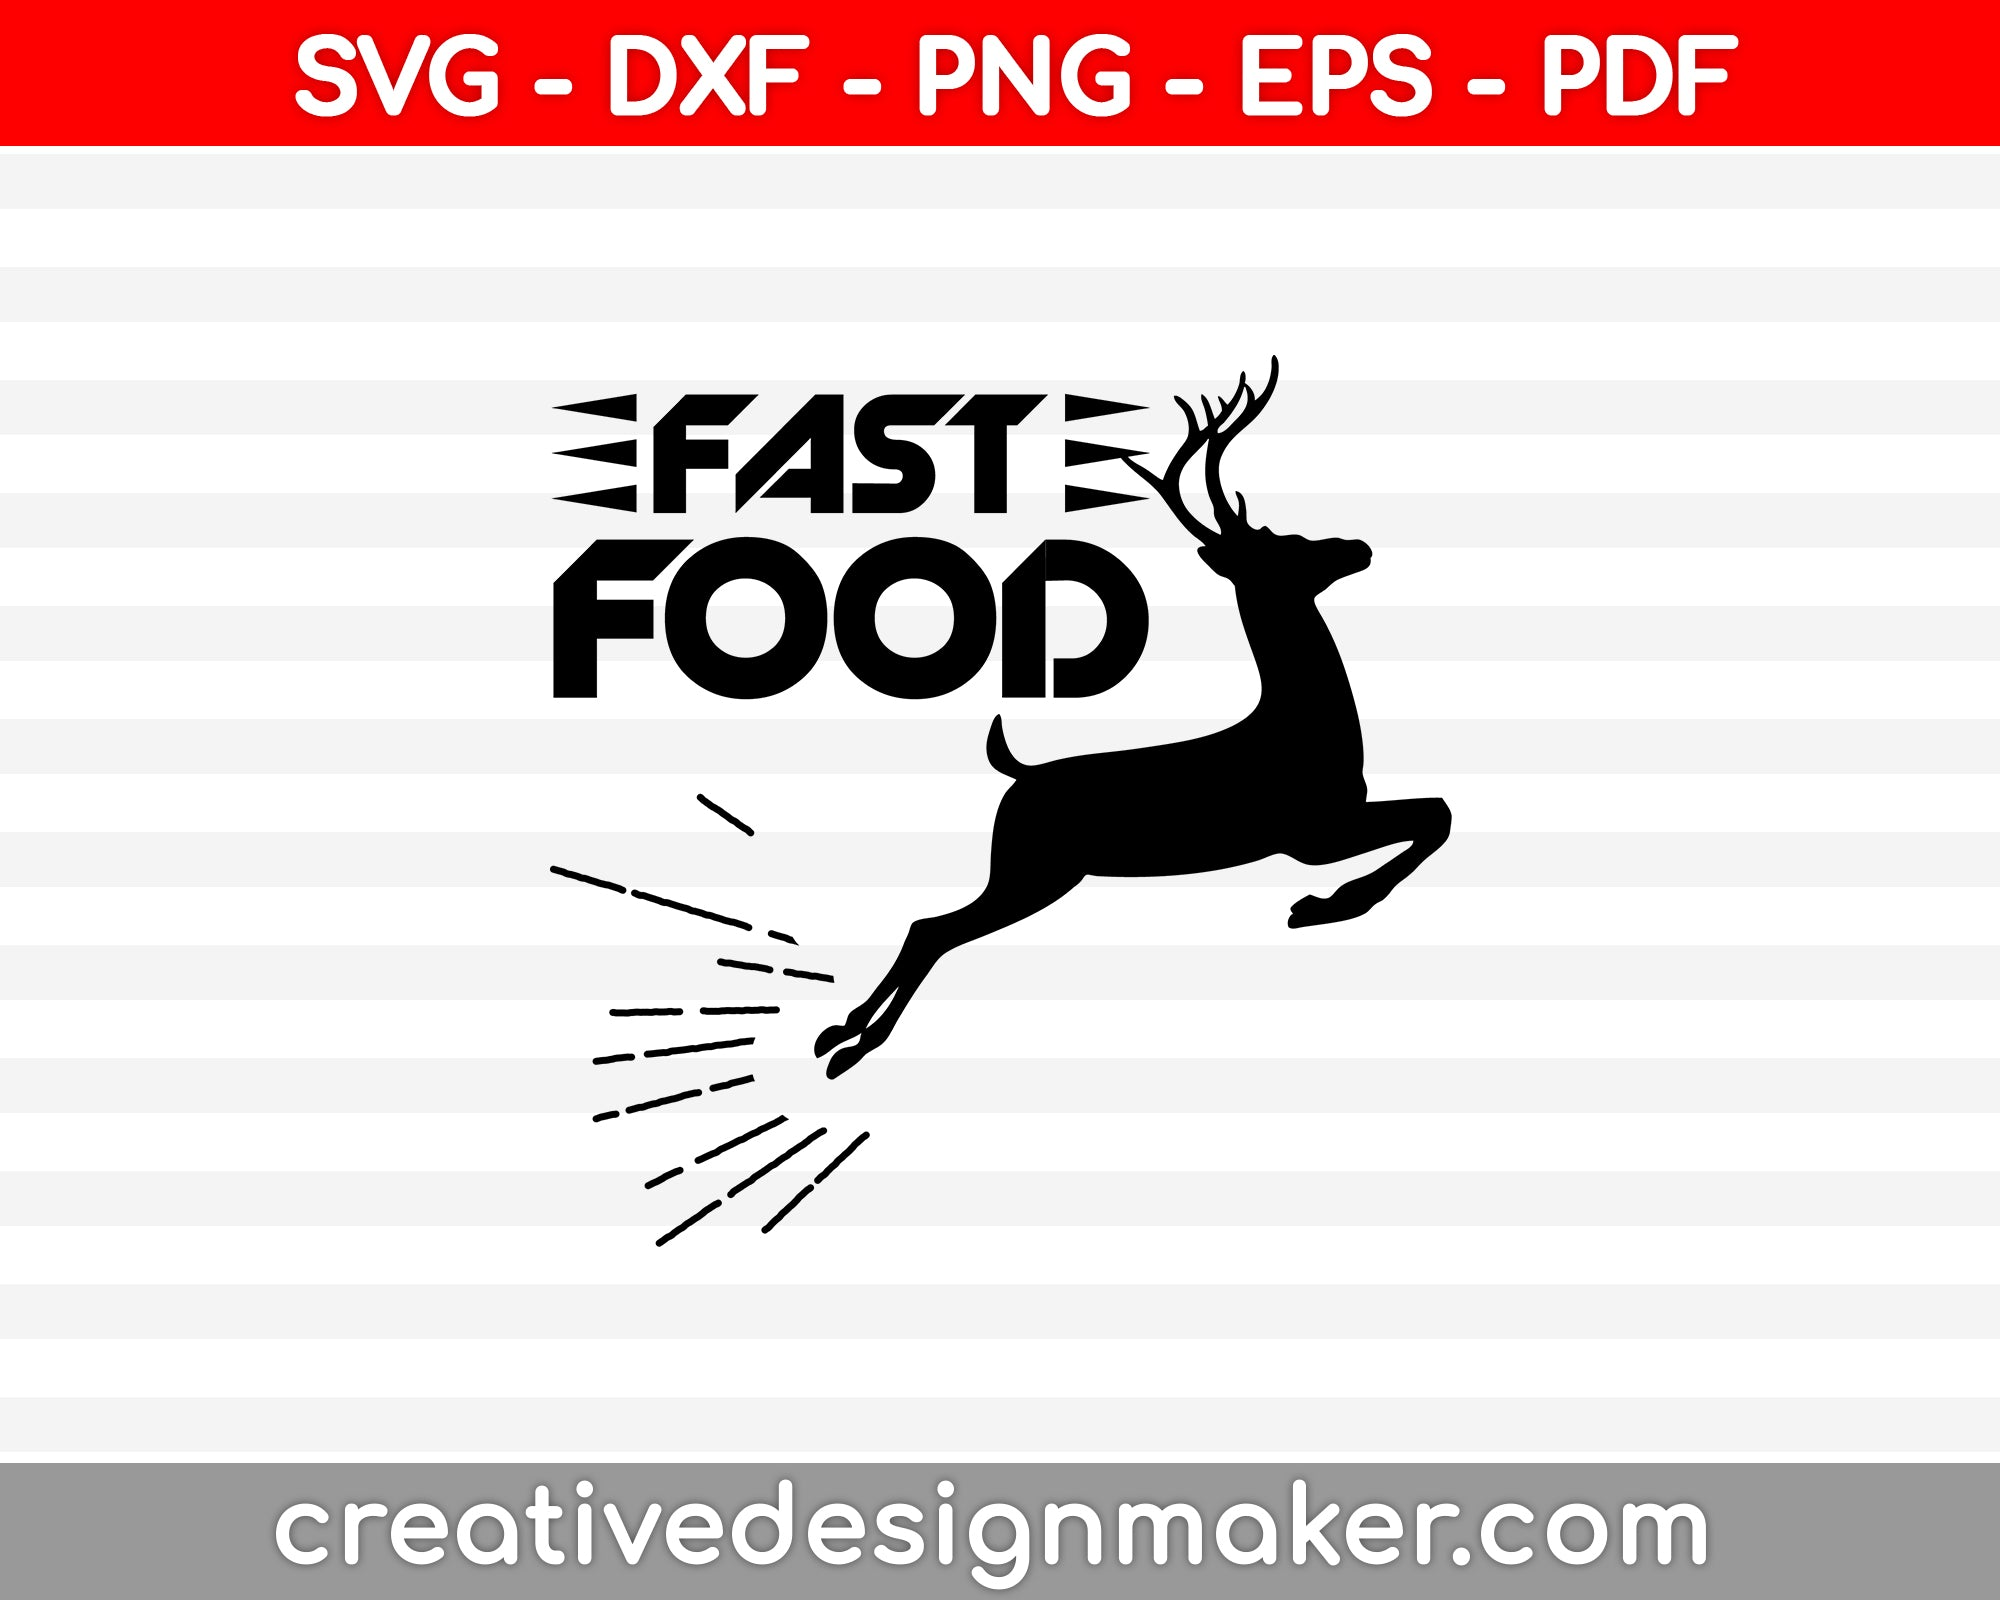 Fast Food SVG PNG Cutting Printable Files